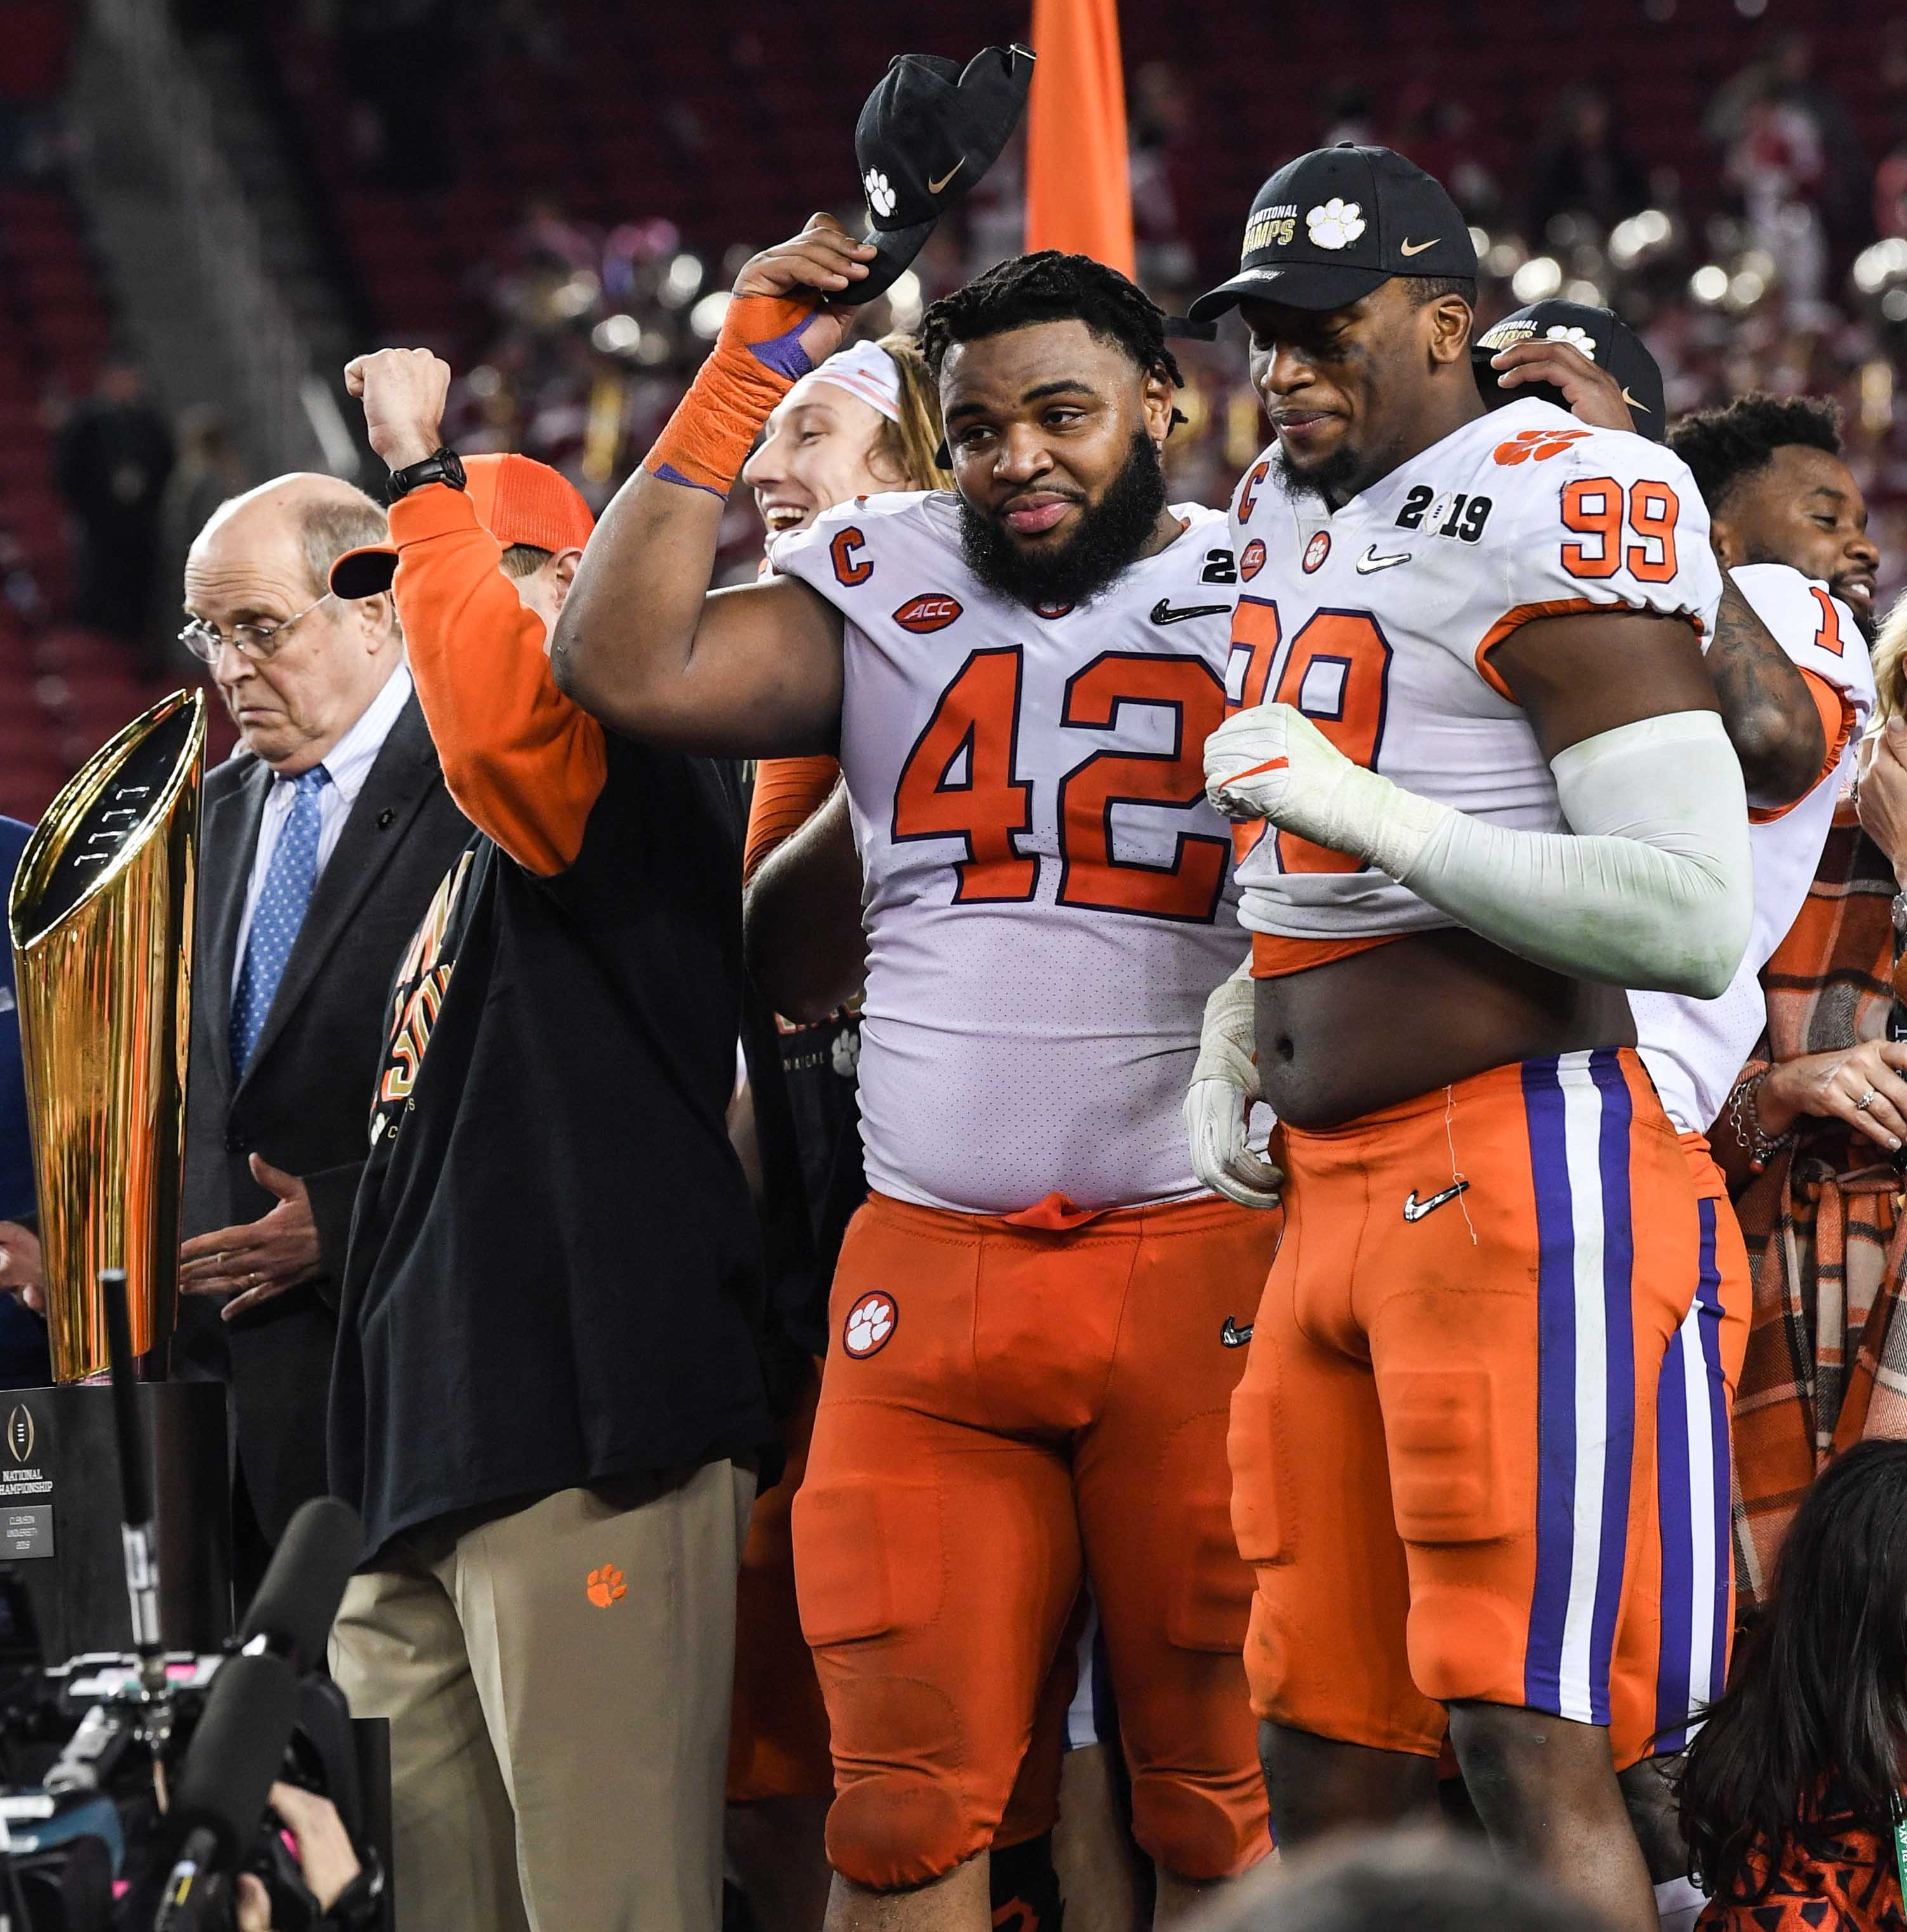 Clemson football 2019 NFL Draft picks: Tigers could beat program record set in 1983